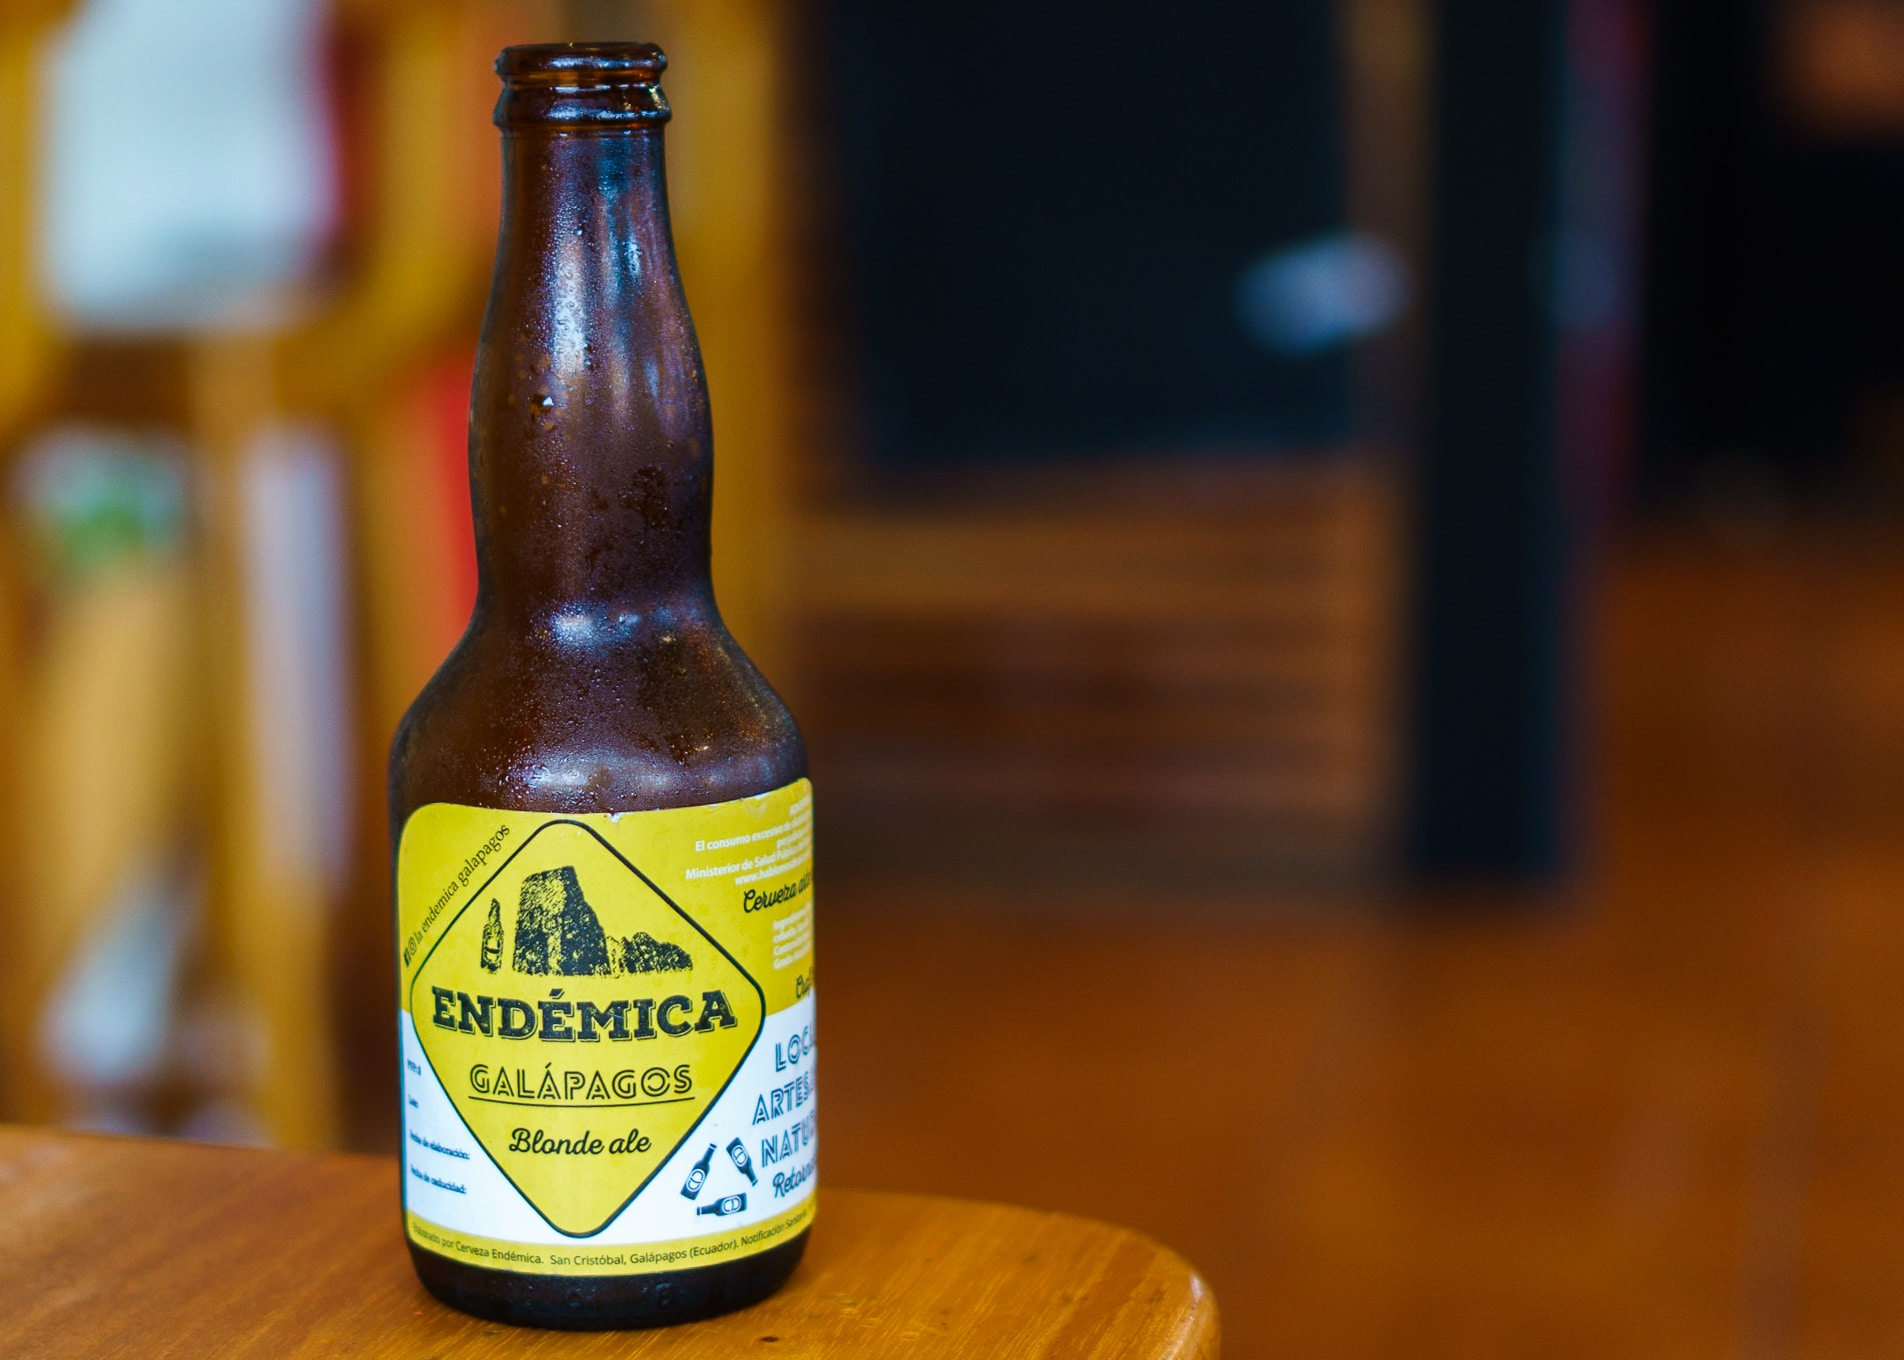 Endemica Beer, brewed on San Cristobal Island